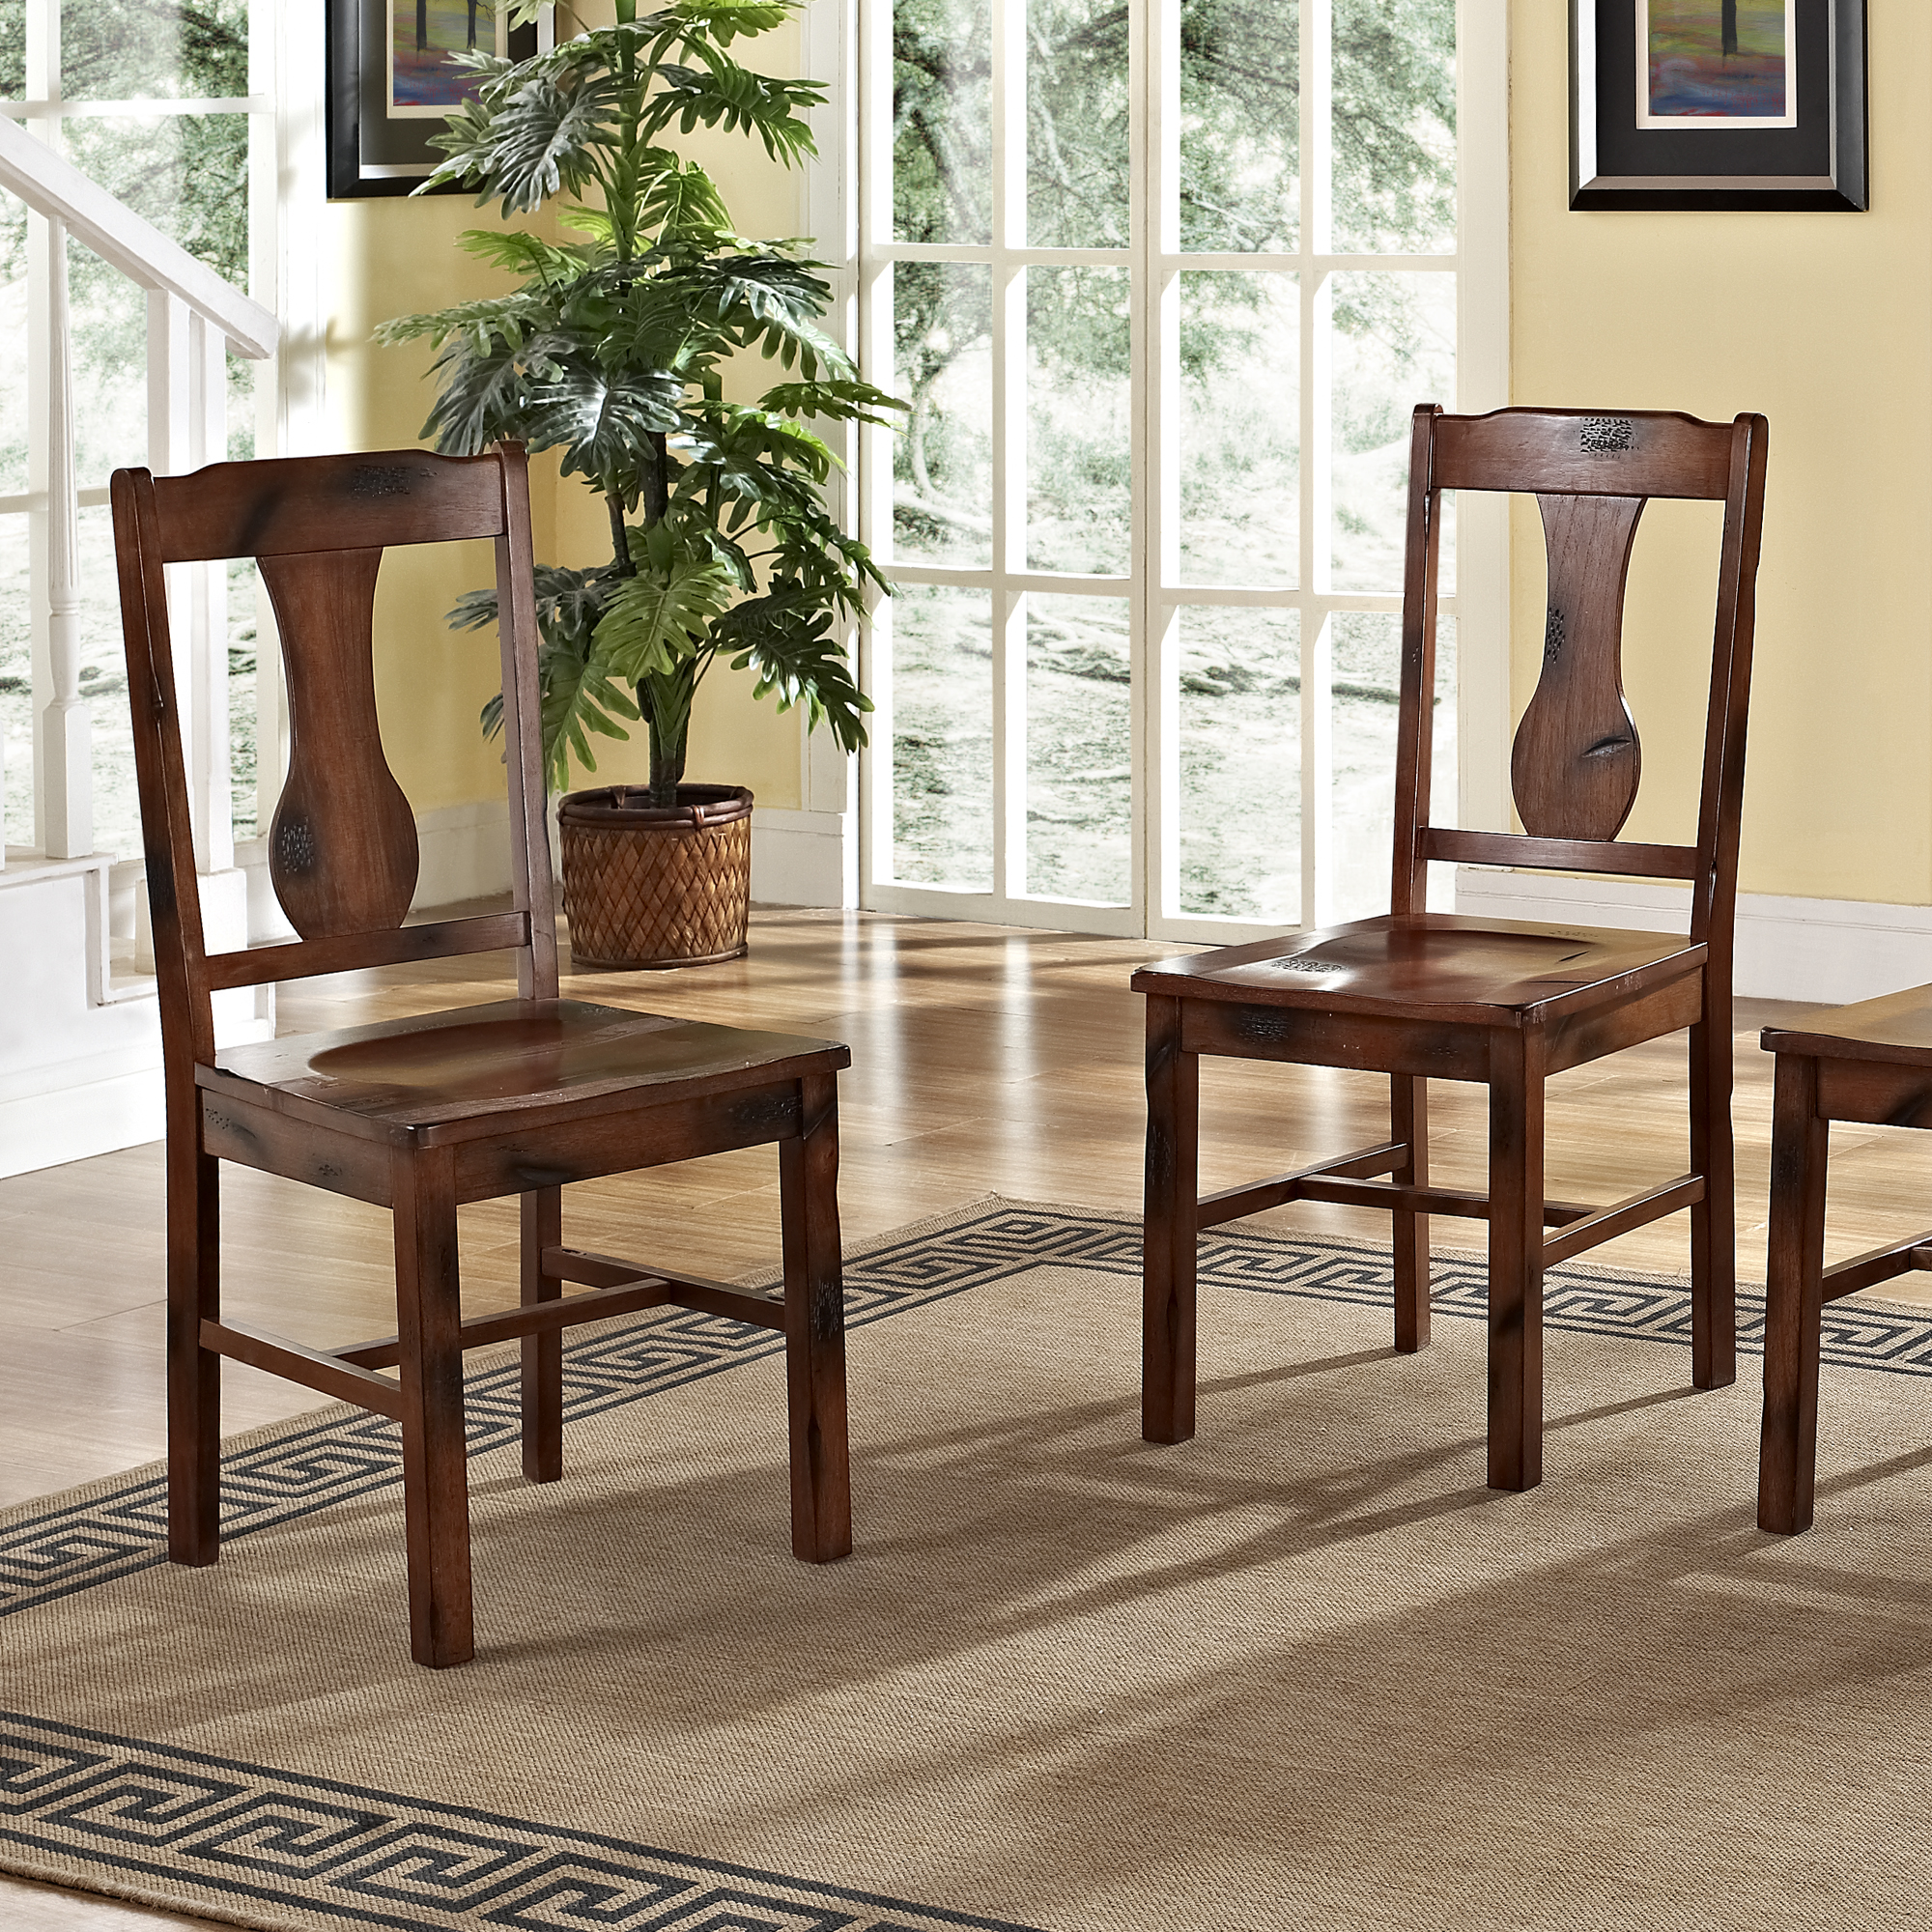 Traditional Distressed Dark Oak Wood Dining Kitchen Chairs, Set Of 2